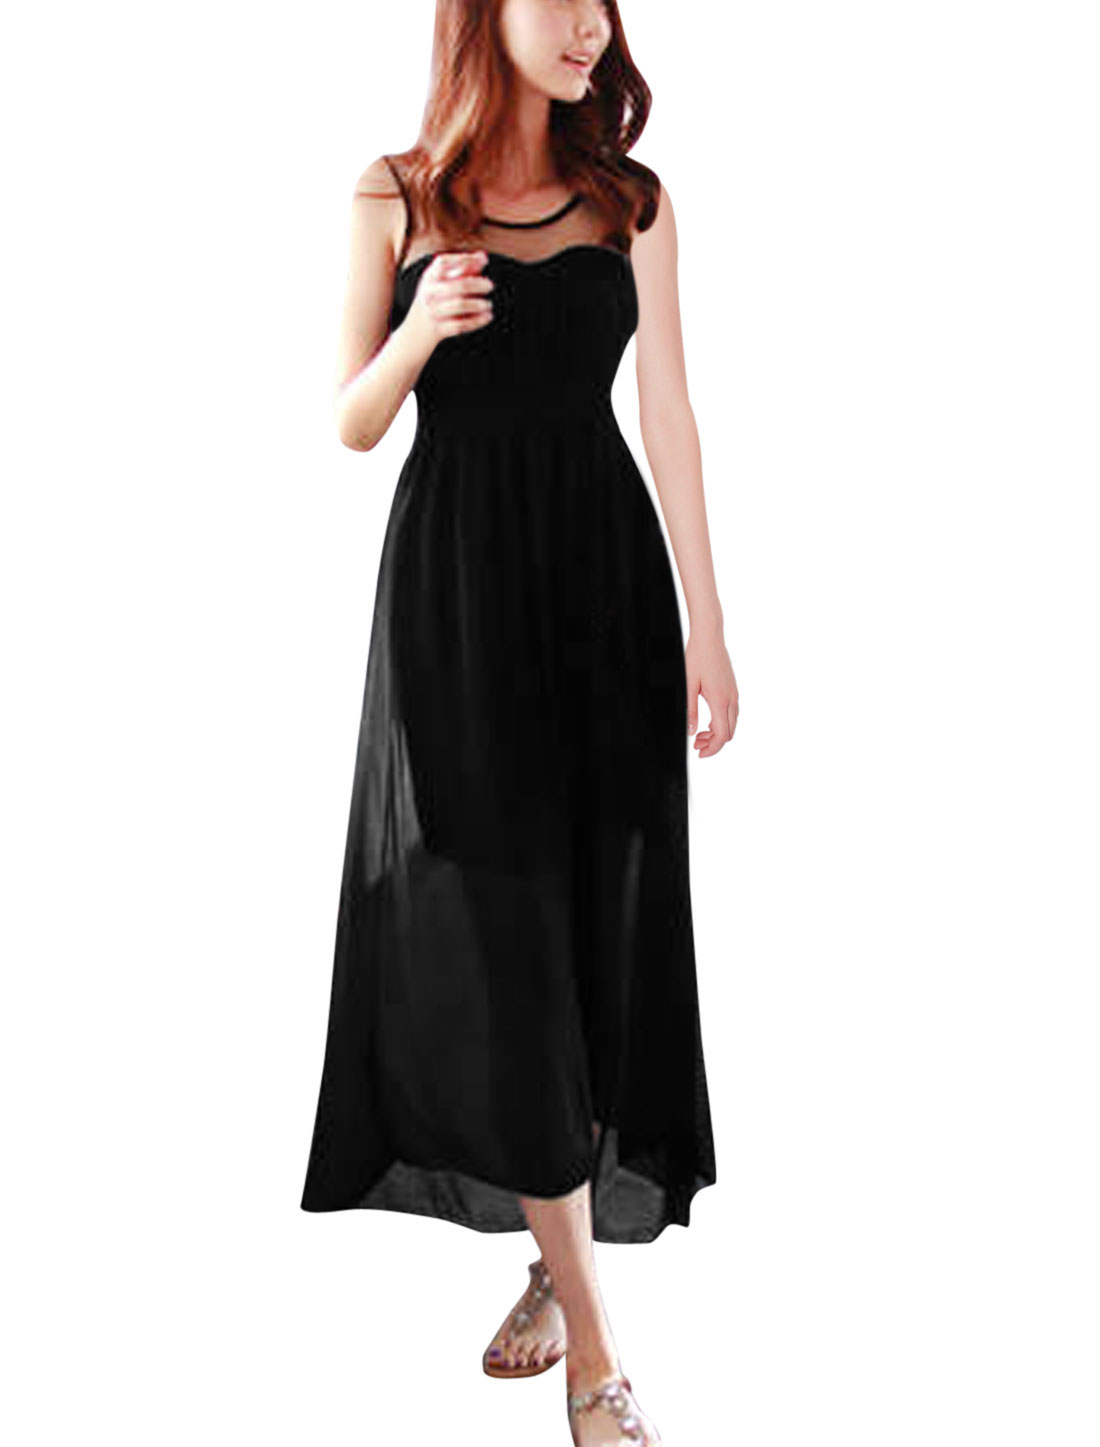 Women Mesh Panel Smocked Waist Elegant Tank Dress Black S